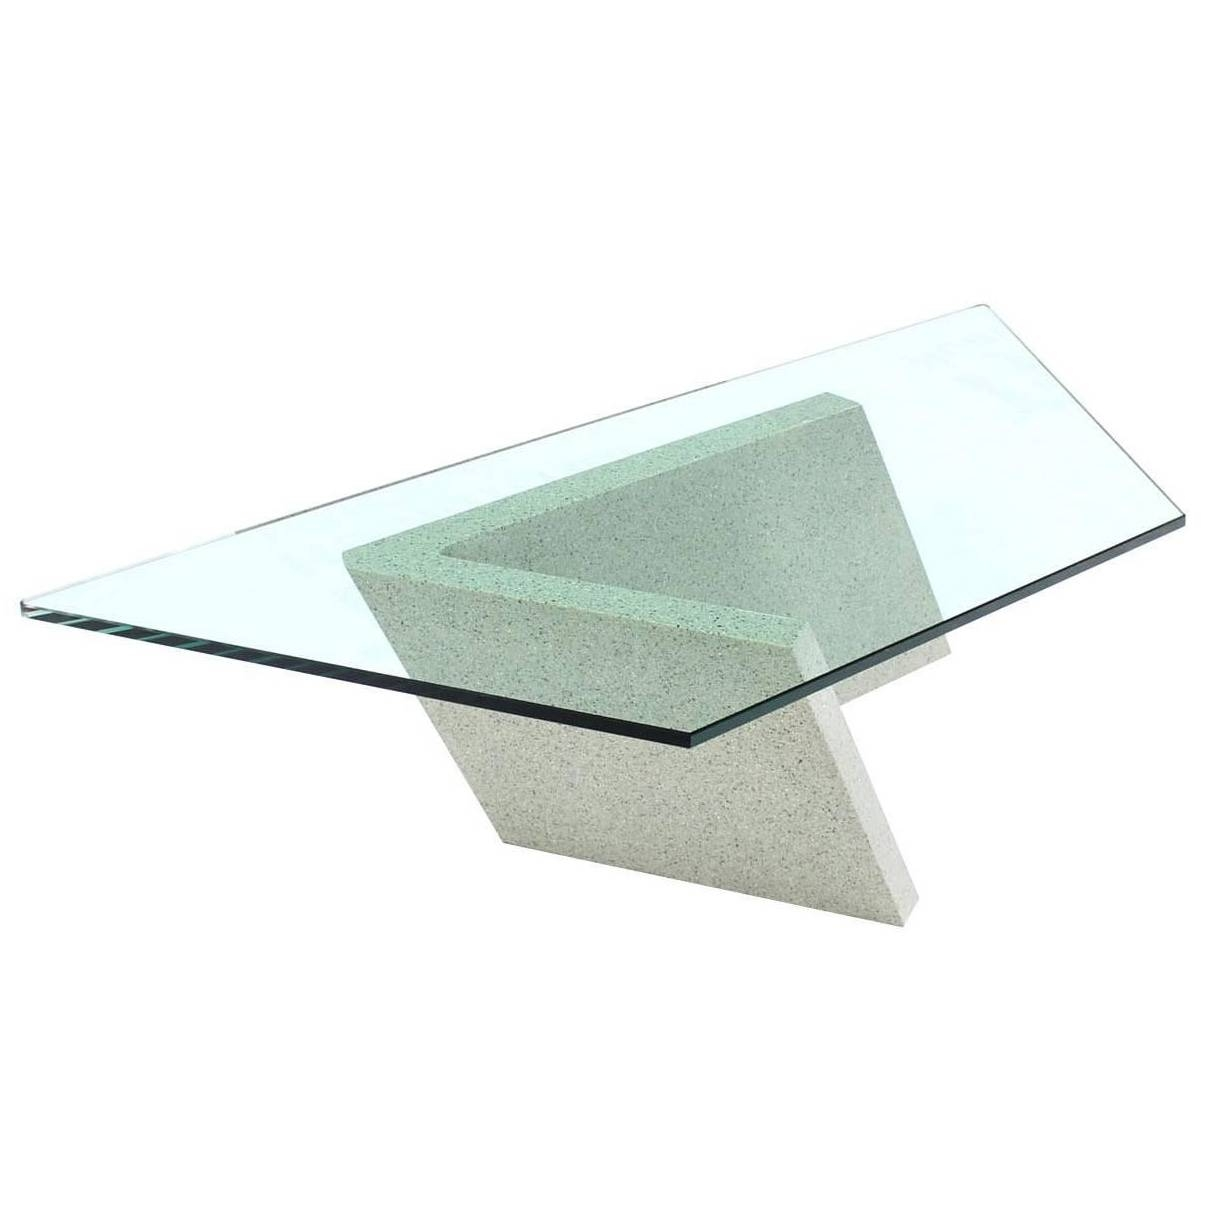 Unusual Glass Coffee Tables Uk – Cocinacentral.co with regard to Unusual Glass Coffee Tables (Image 30 of 30)